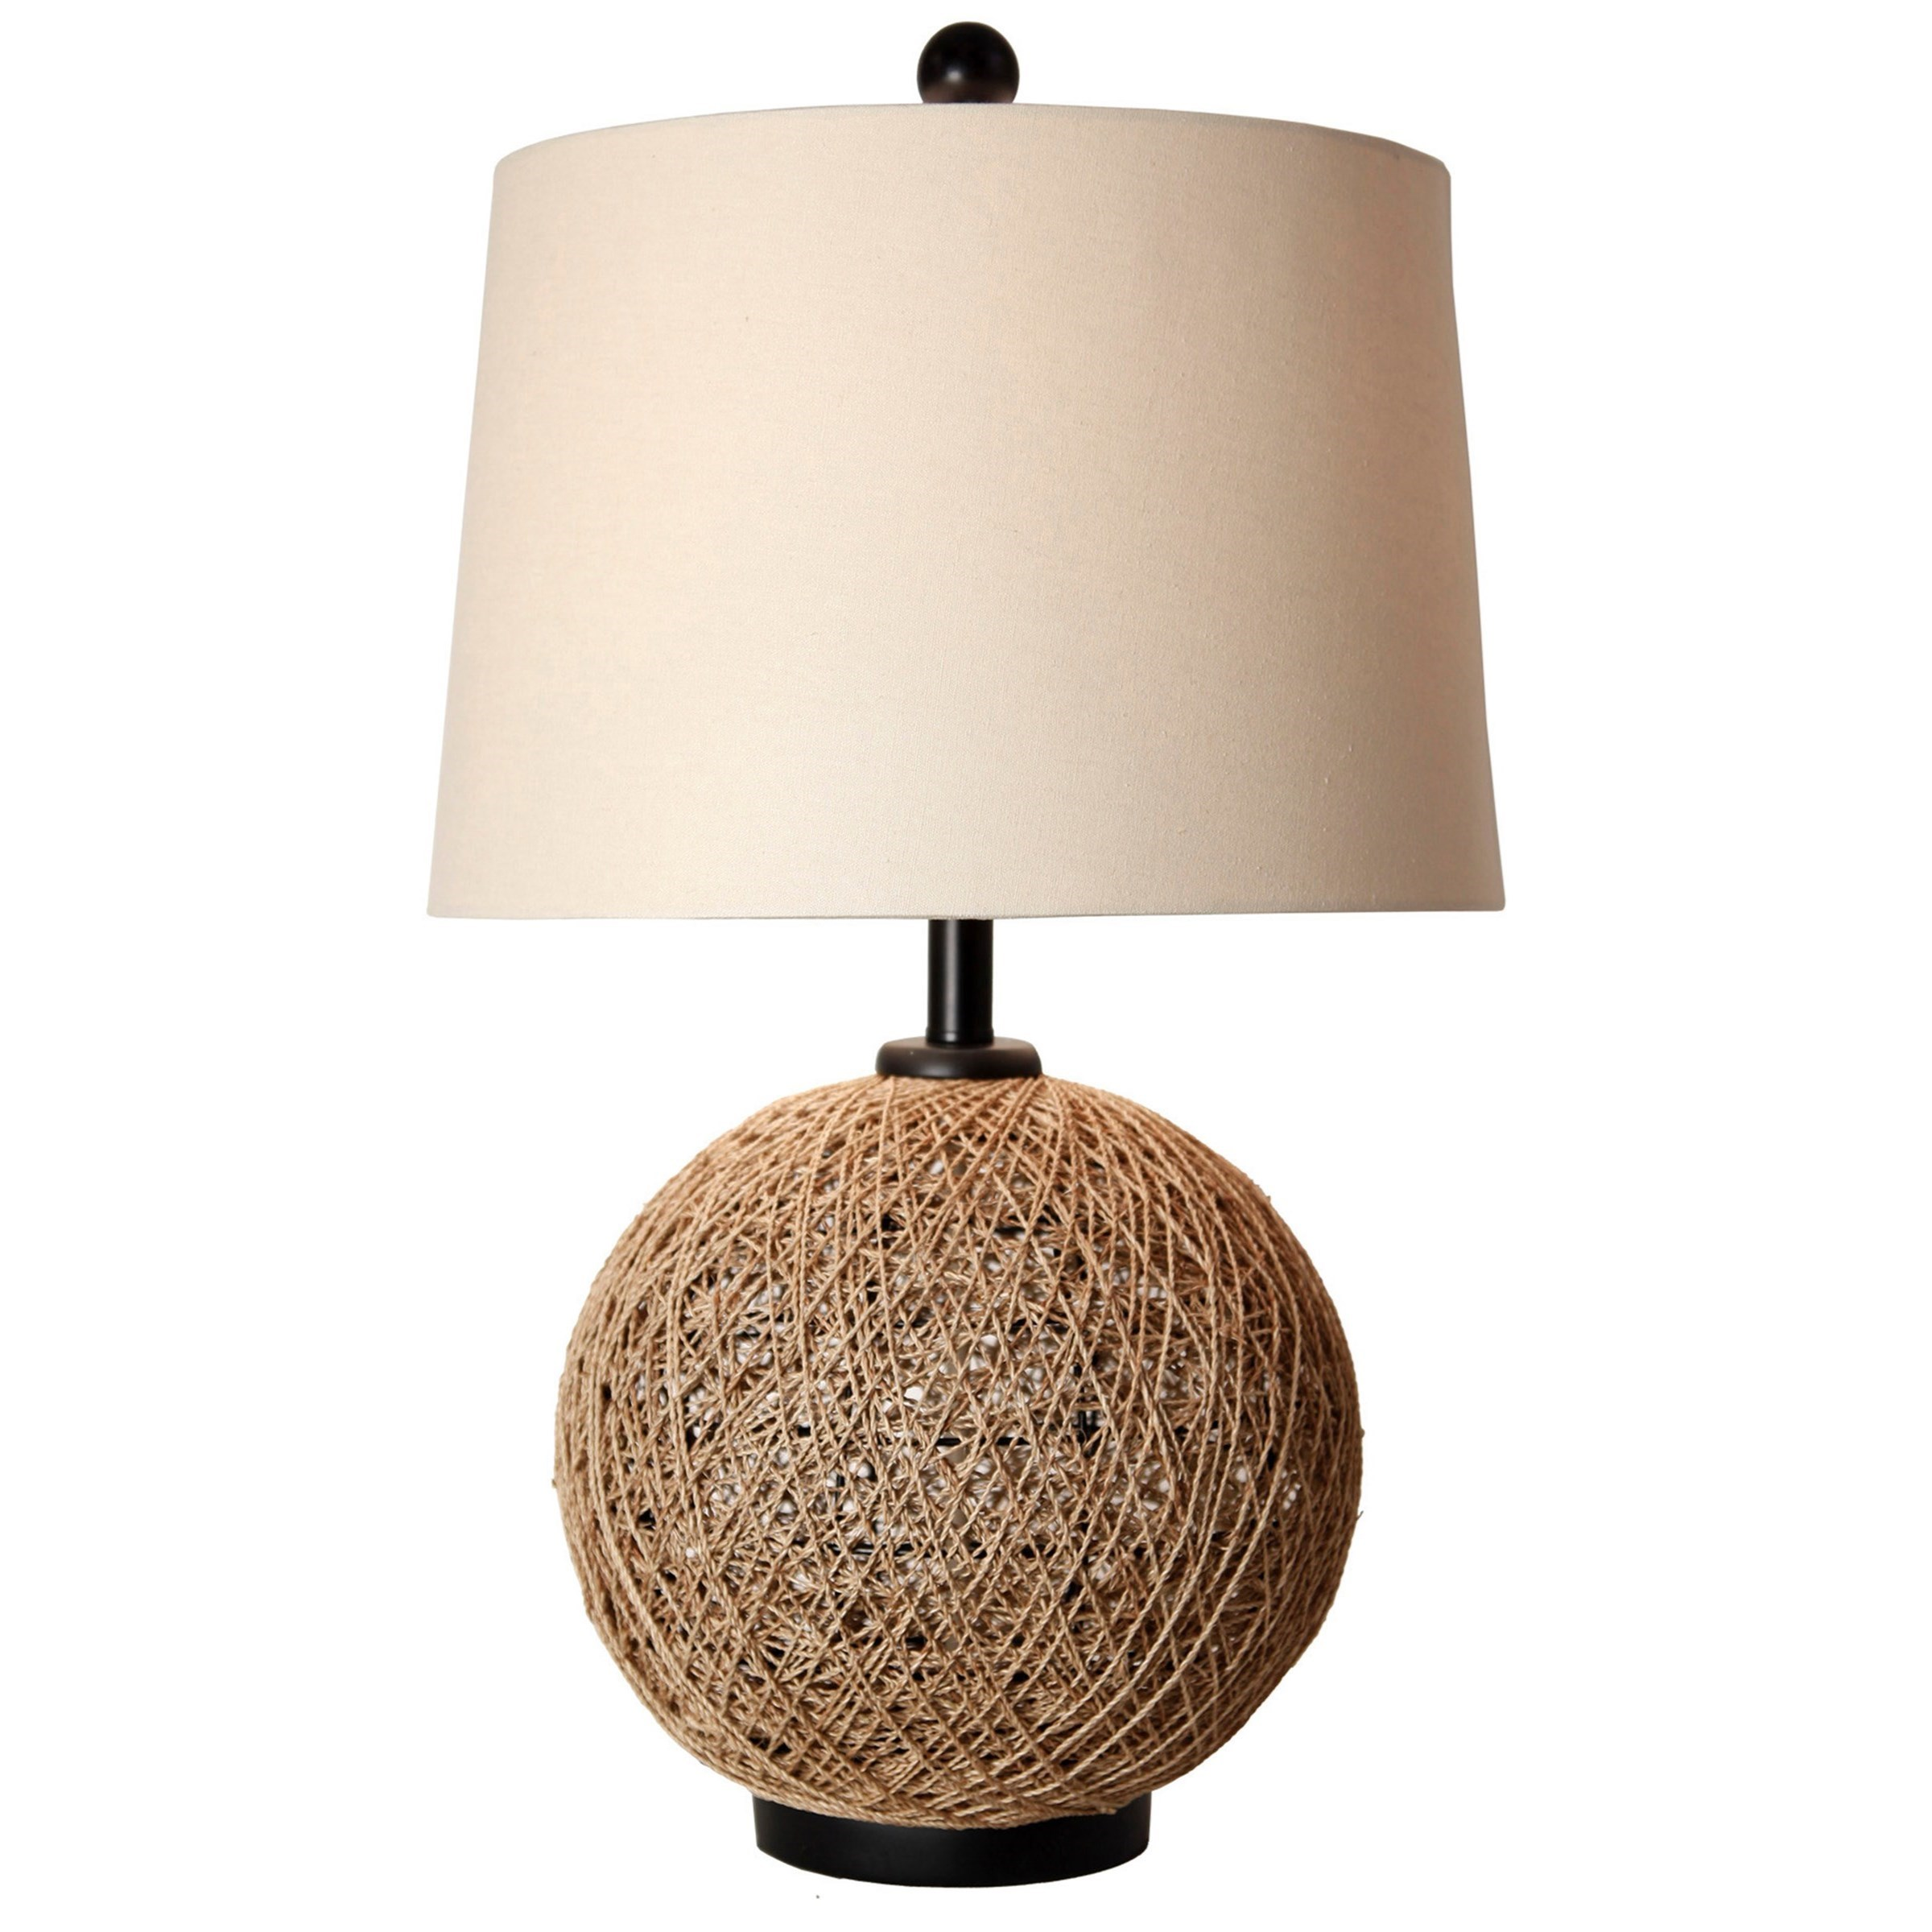 Stylecraft lamps woven natural rattan ball table lamp household stylecraft lamps woven natural rattan ball table lamp item number cjt1041 geotapseo Choice Image